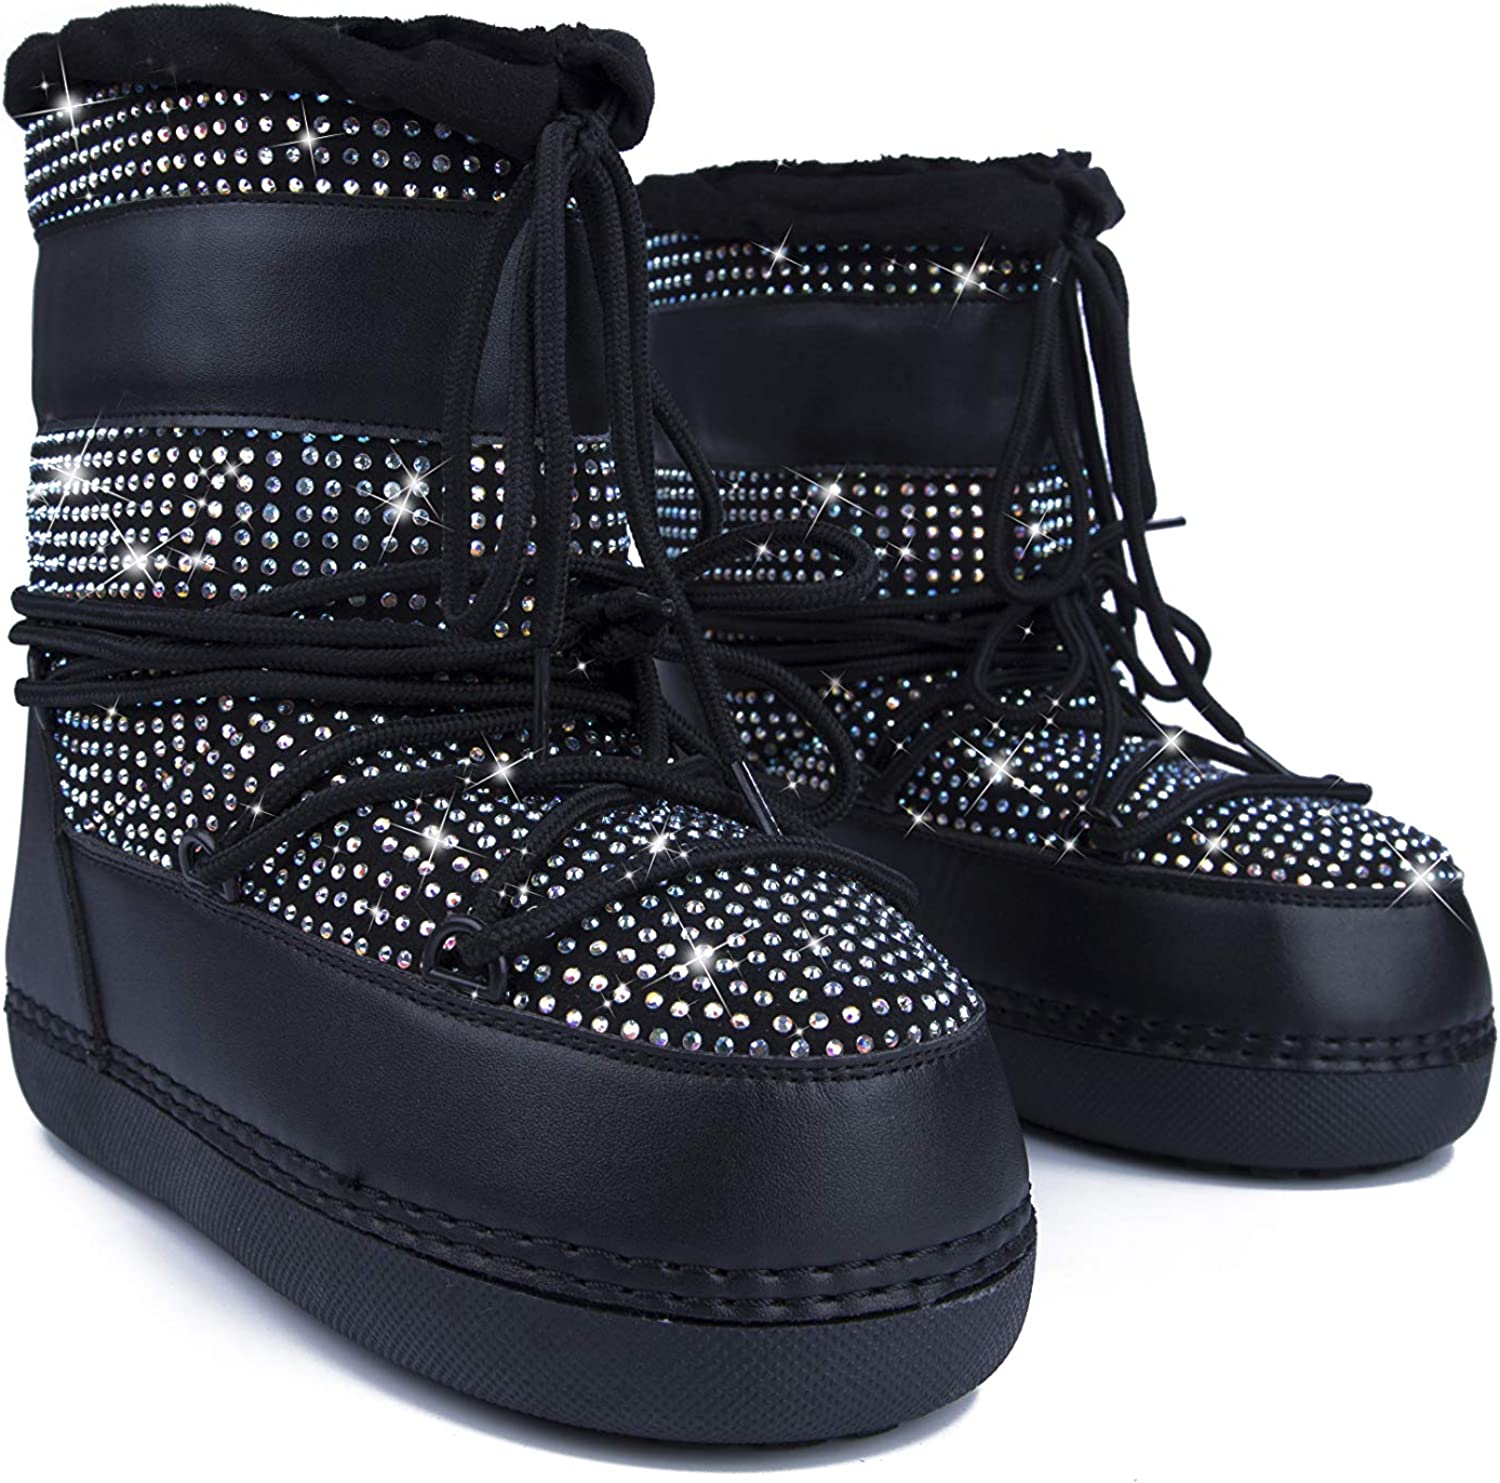 Cape Robbin Freeze Warm Winter Boots for Women Girls, Lace Up Snow Moon Boots, Ladies Sparkly Winter Boots